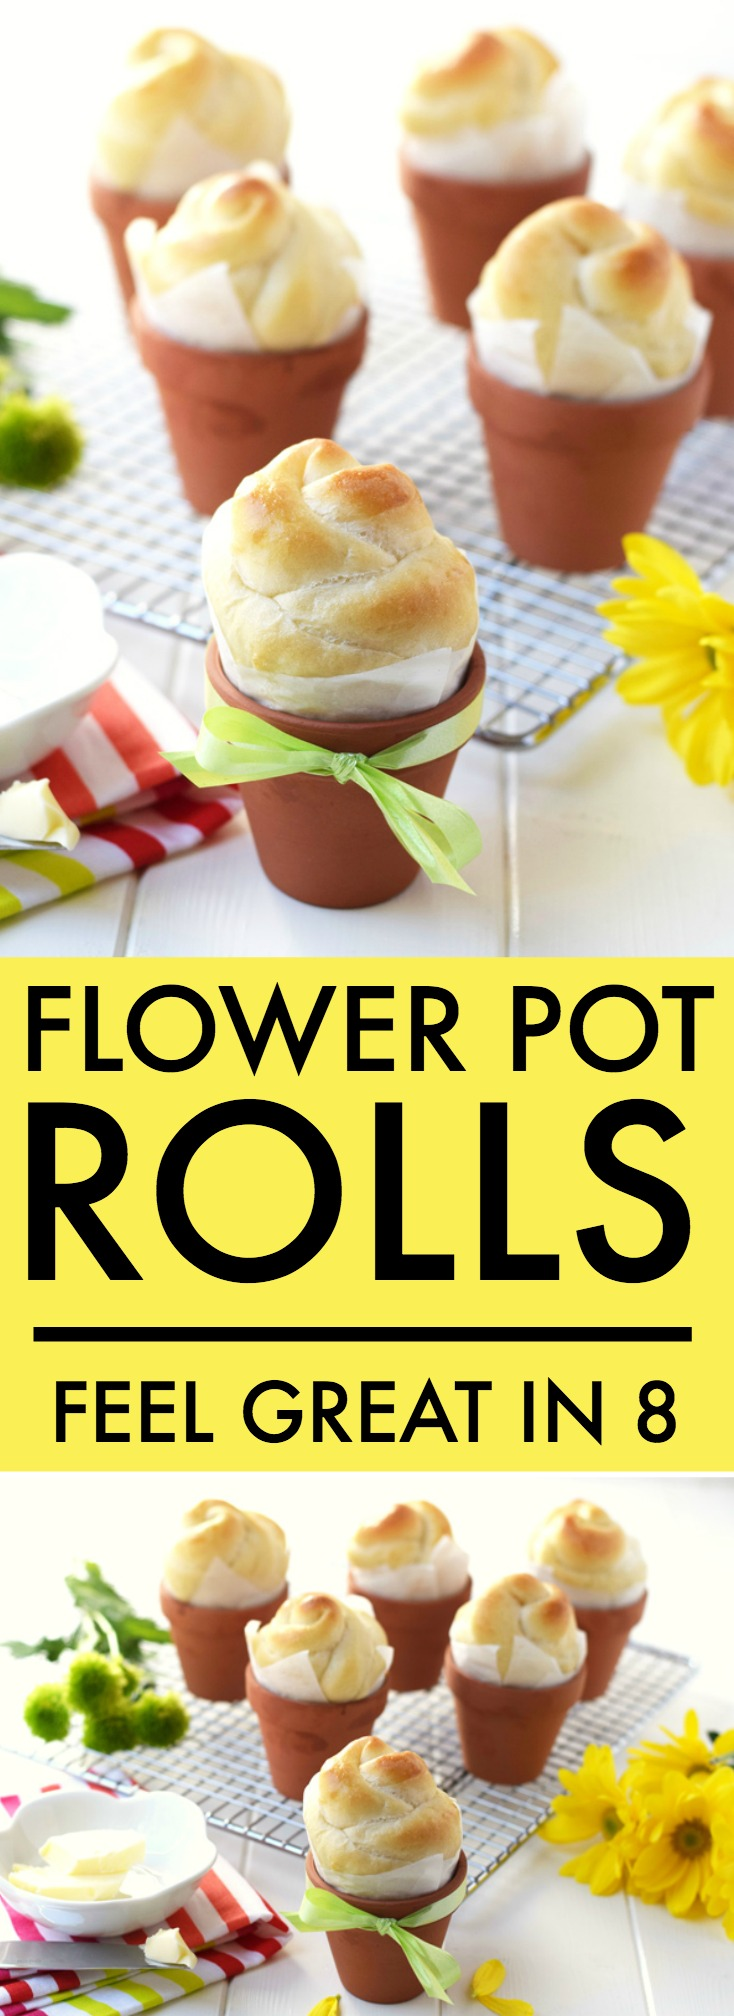 Flower Pot Rolls - Did you know that you can bake rolls right in little terra cotta flower pots? This fun how to recipe is perfect for spring!